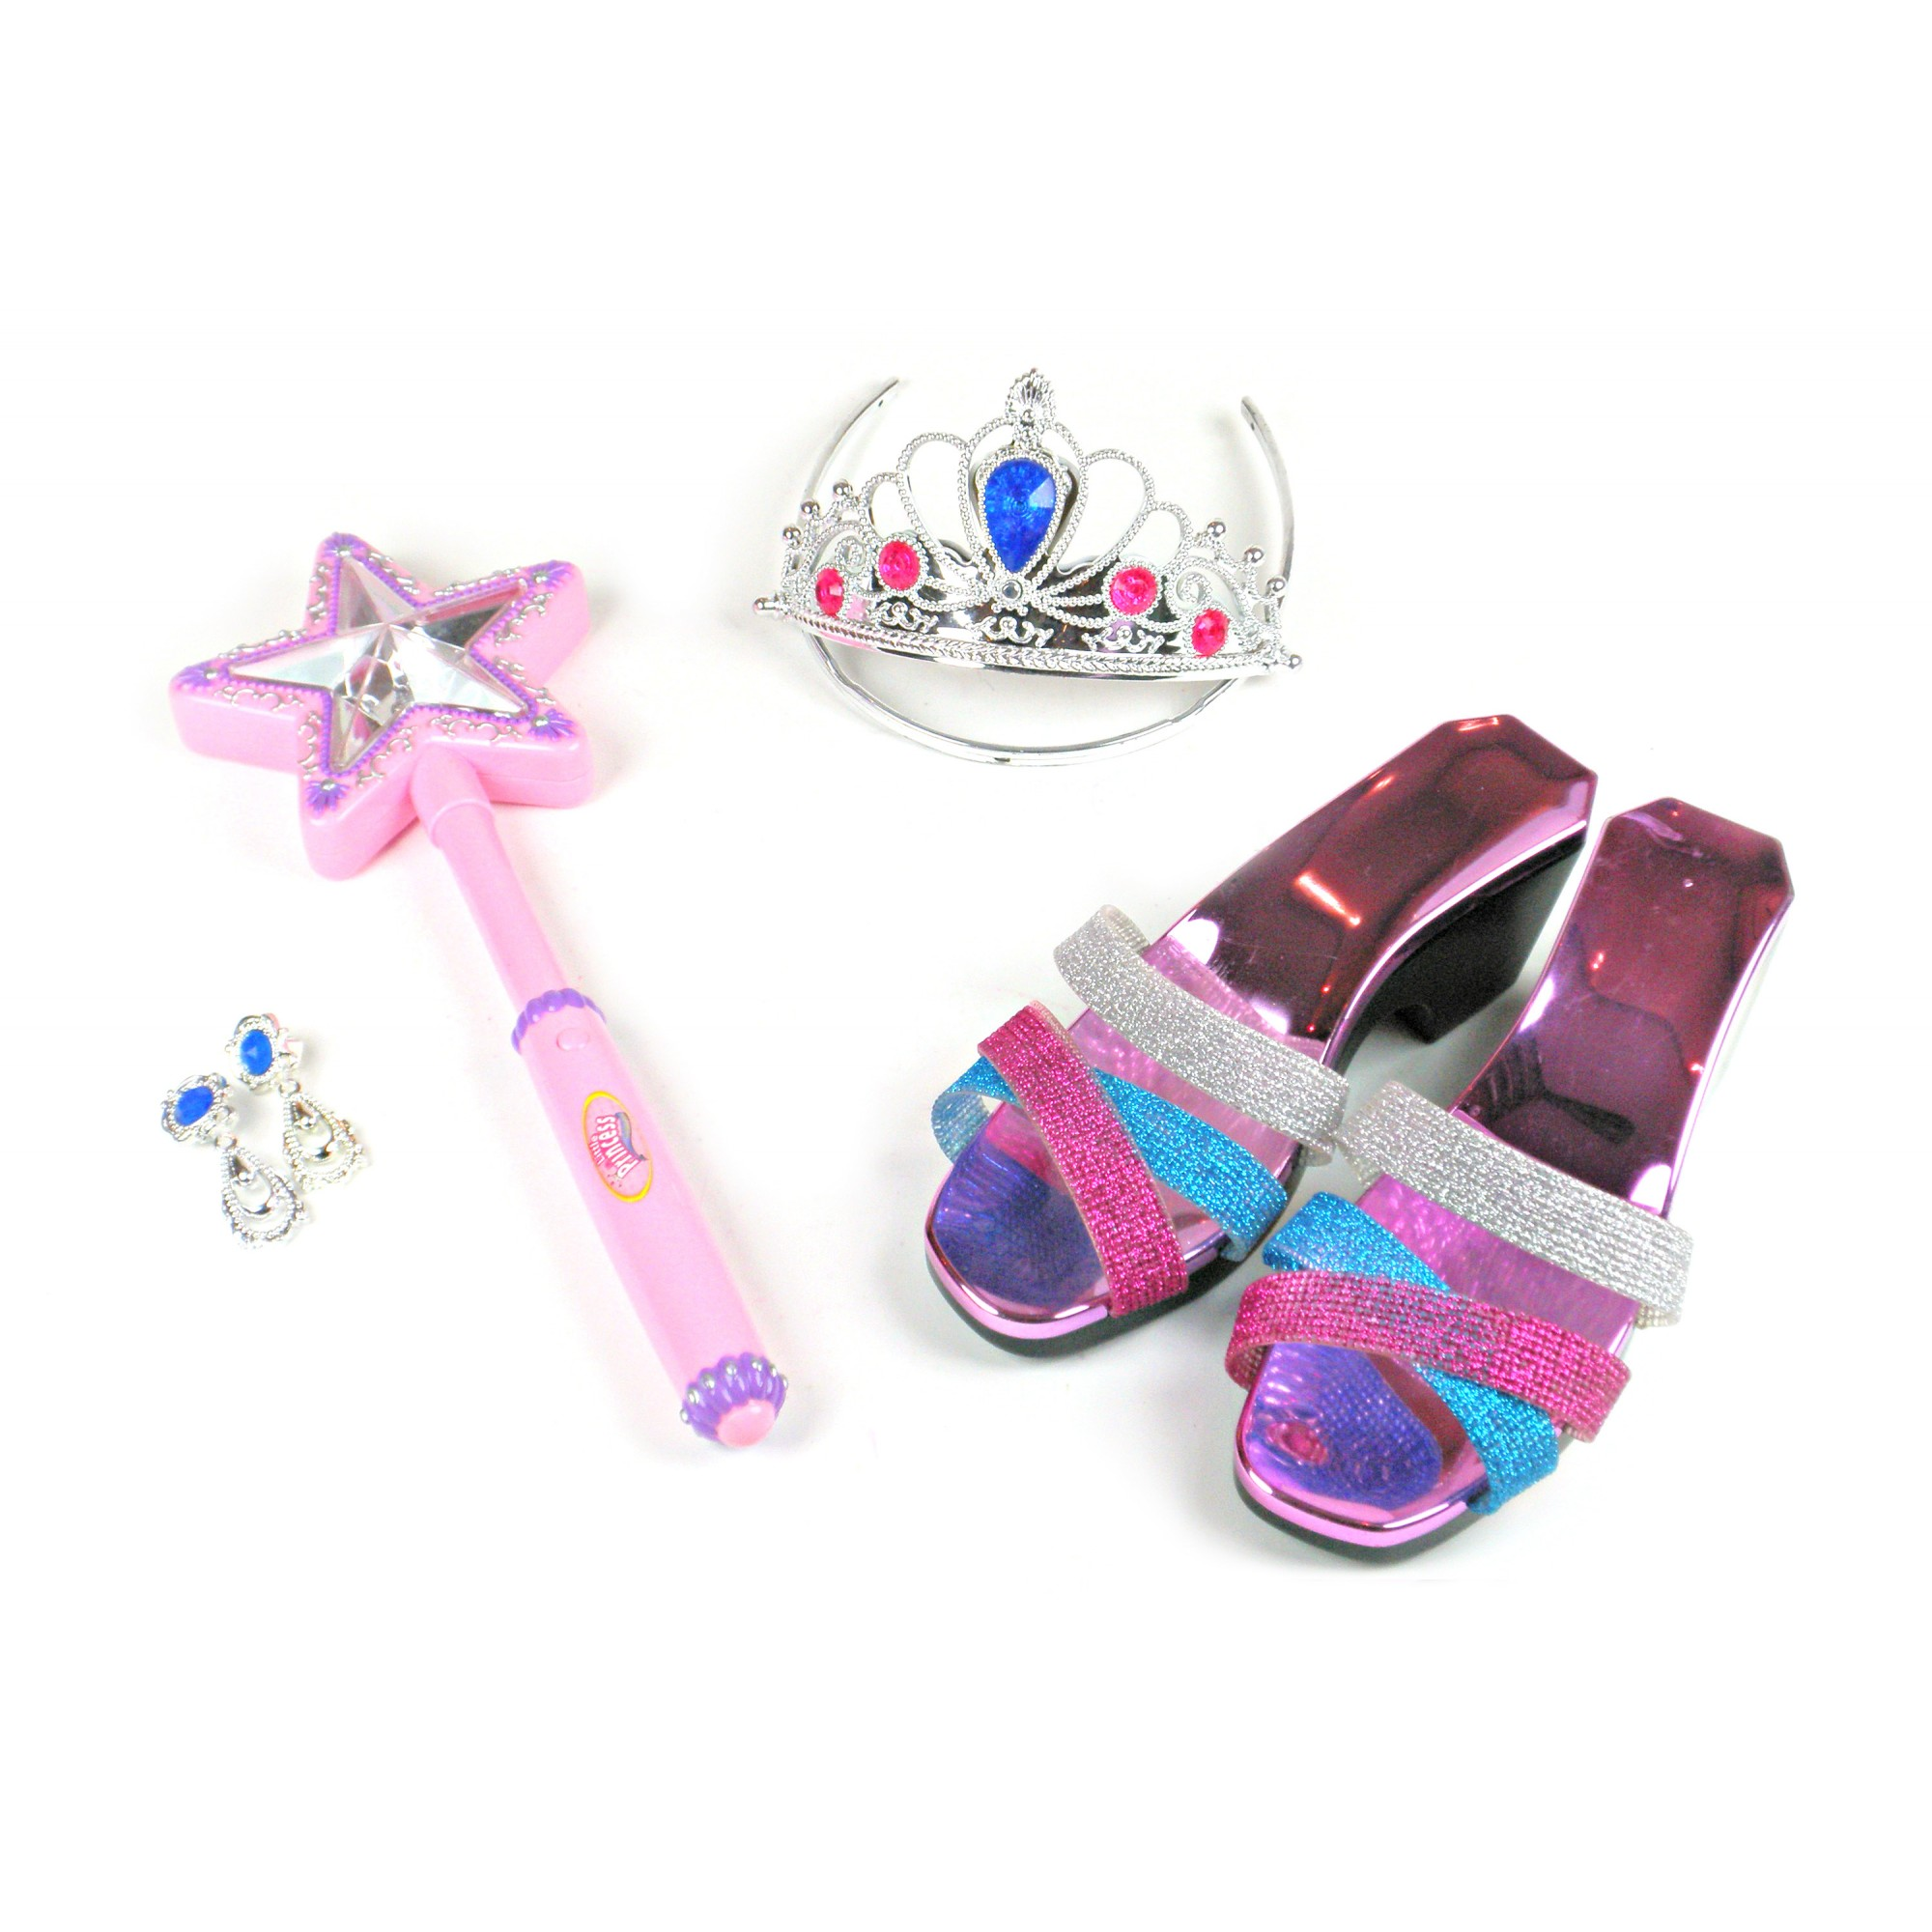 Light Up Wand & Tiara Jewel Set